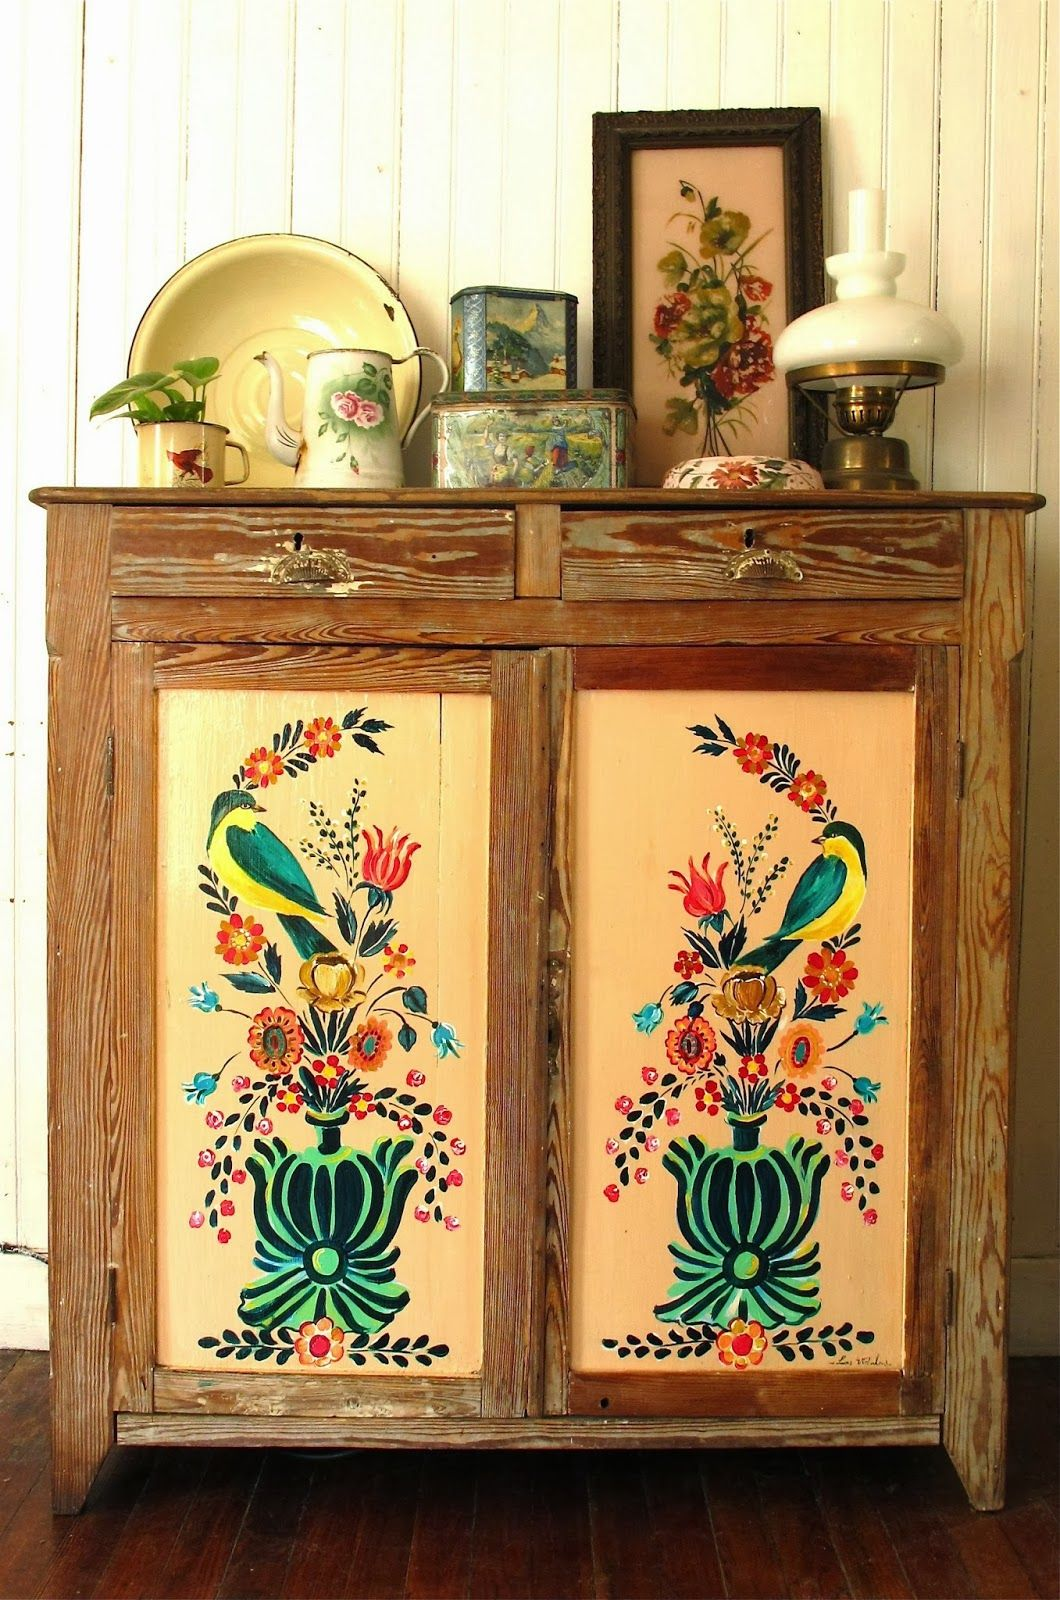 Pinterest Meubles Peints I Have Something For Folky Hand Painted Furniture Furniture